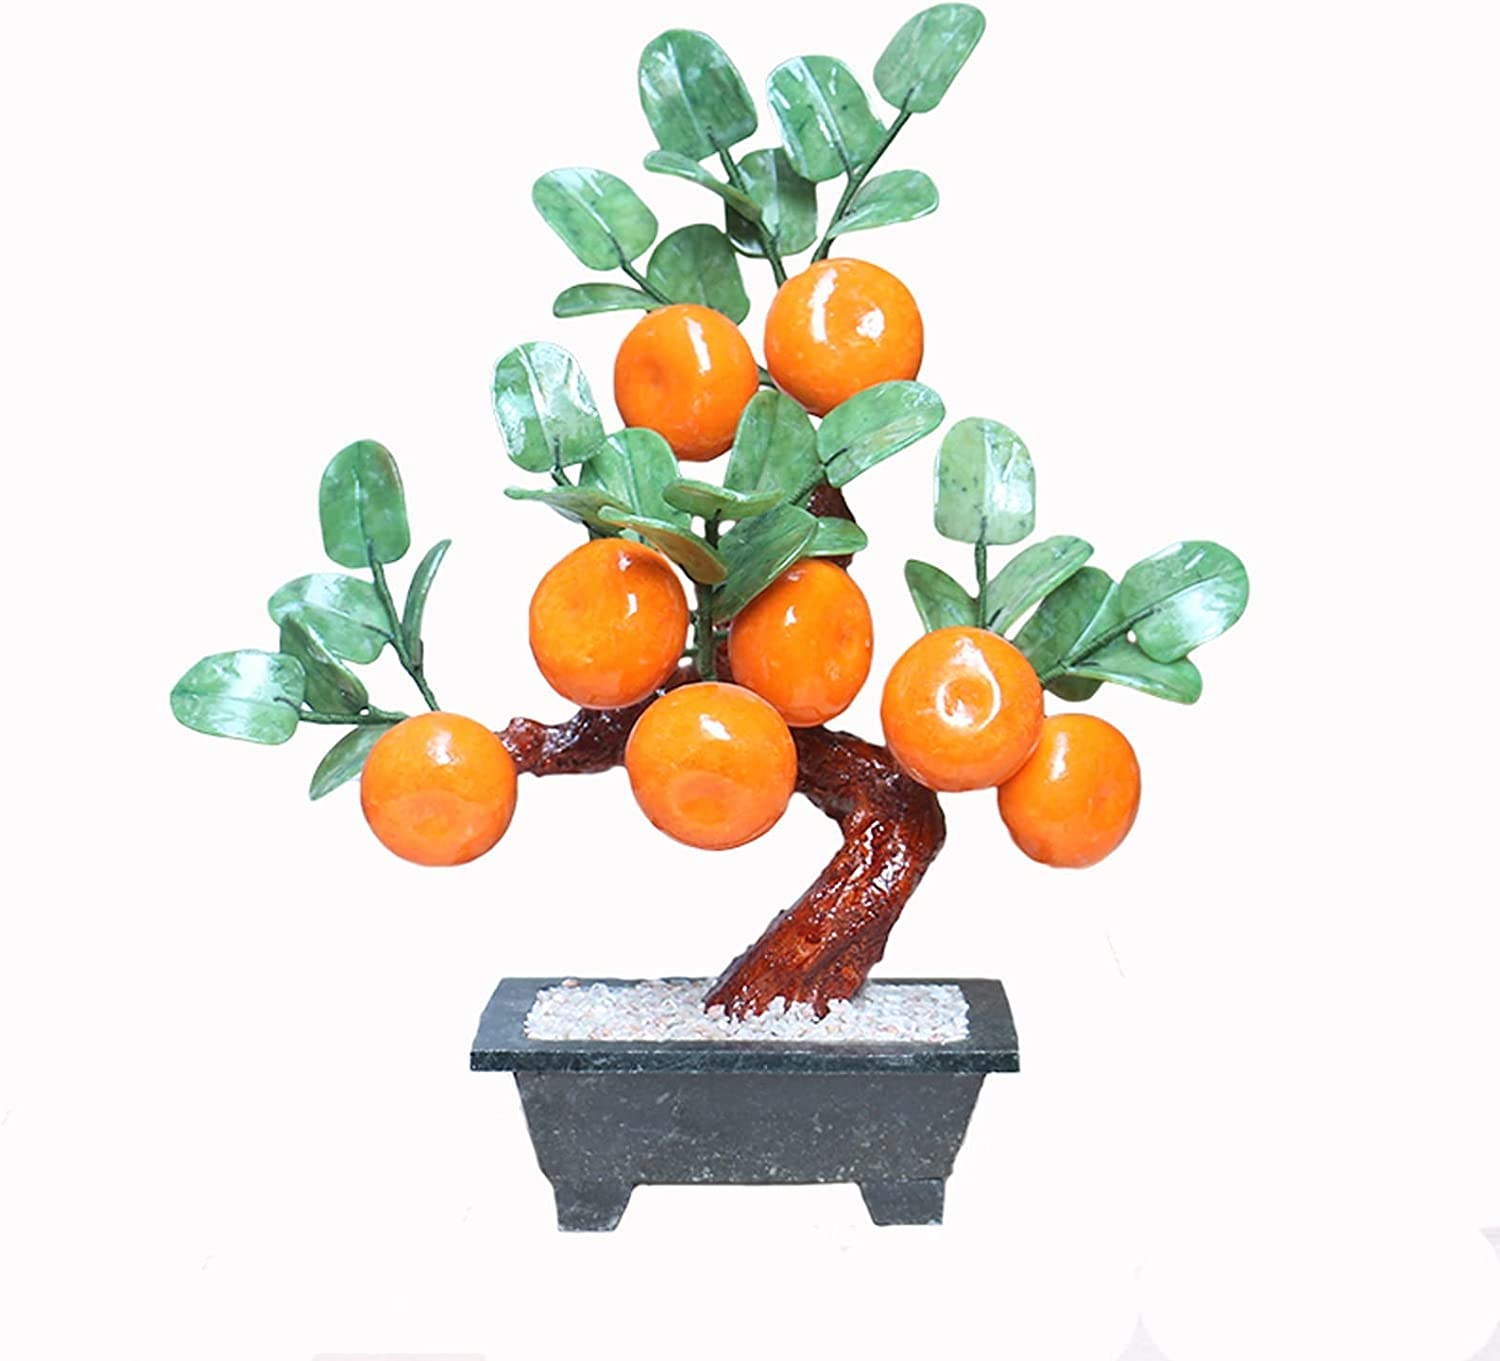 At the price of surprise Artificial Plants bonzai trees indoor Challenge the lowest price of Japan ☆ Jade Shui Bonsai Tree Feng